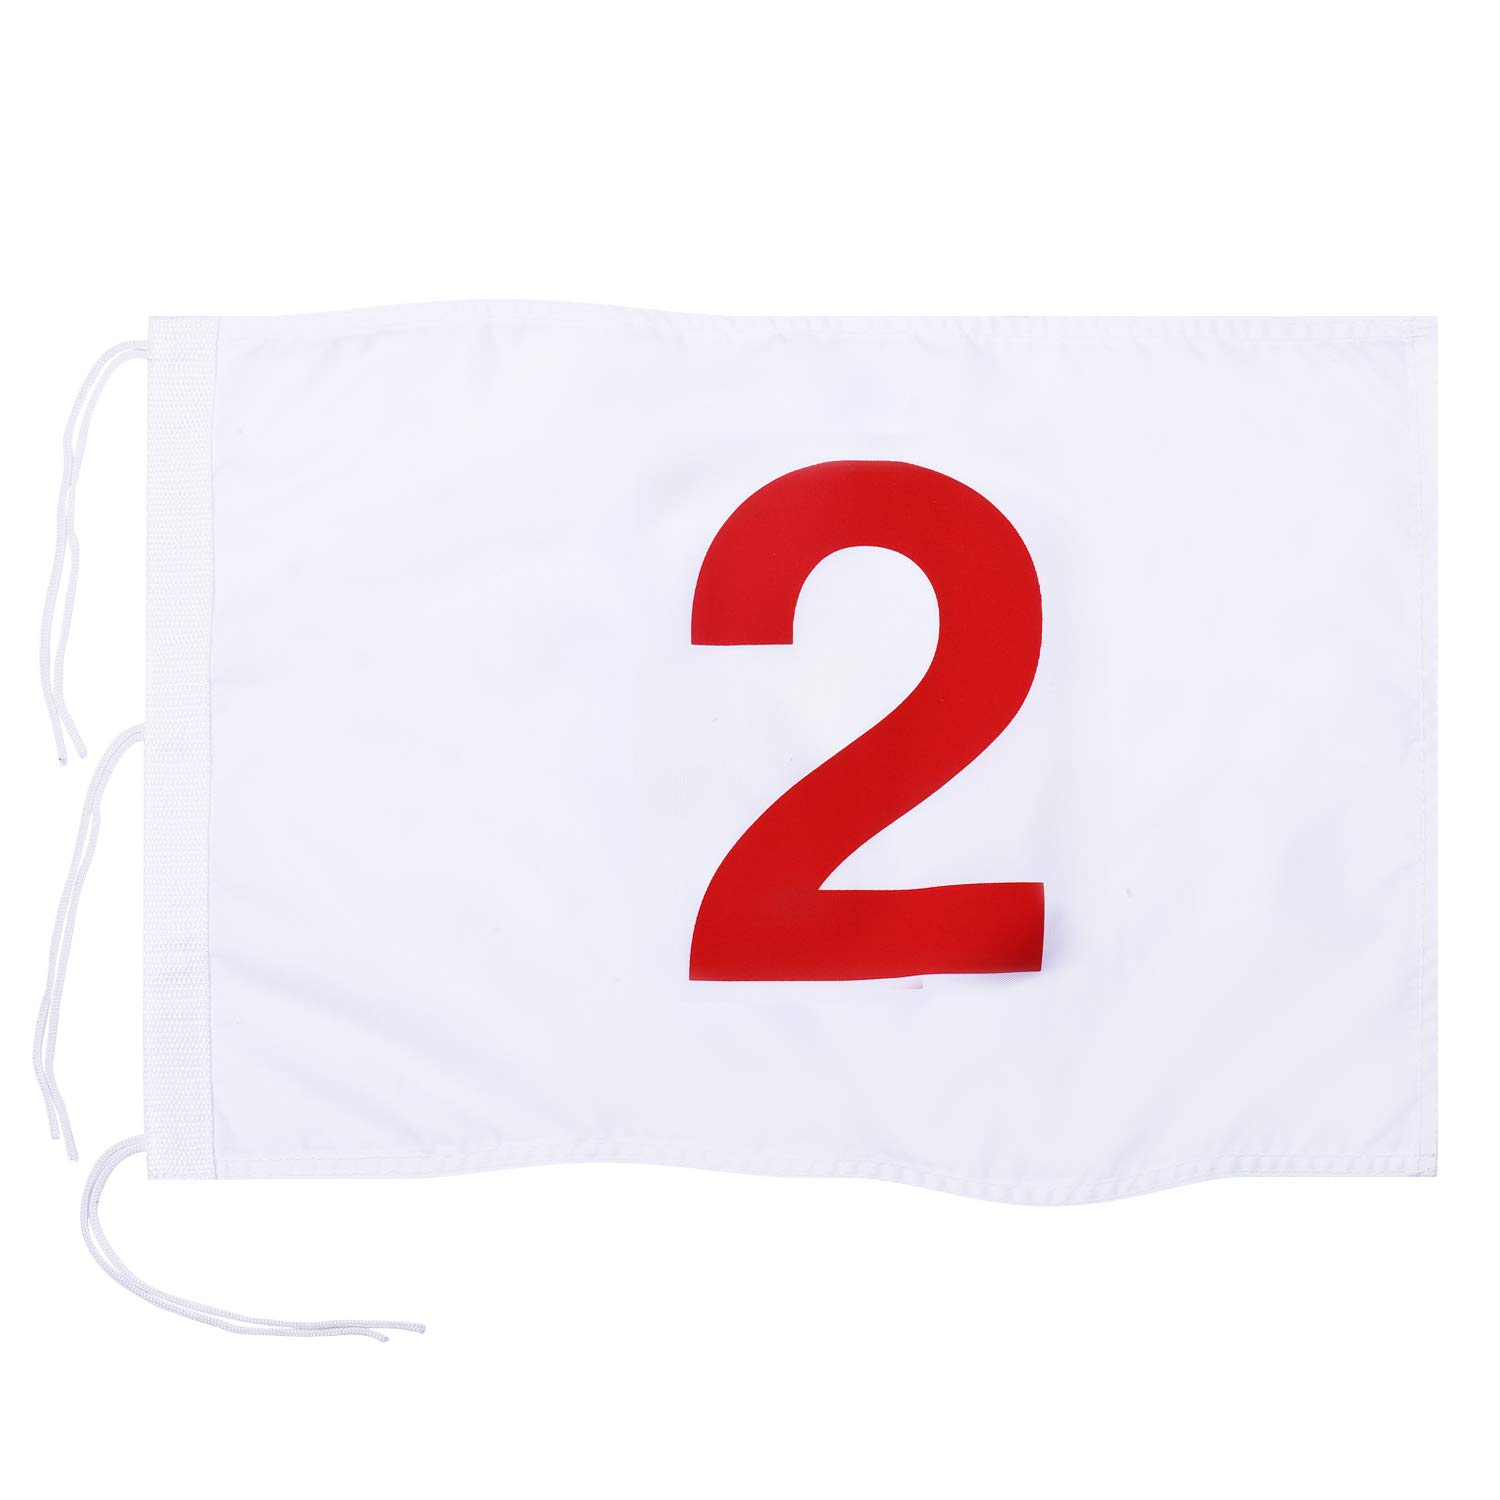 KINGTOP Numbered Golf Flag with Secure Strings, 13'' L x 20'' W, 420D Nylon, White 2 by KINGTOP